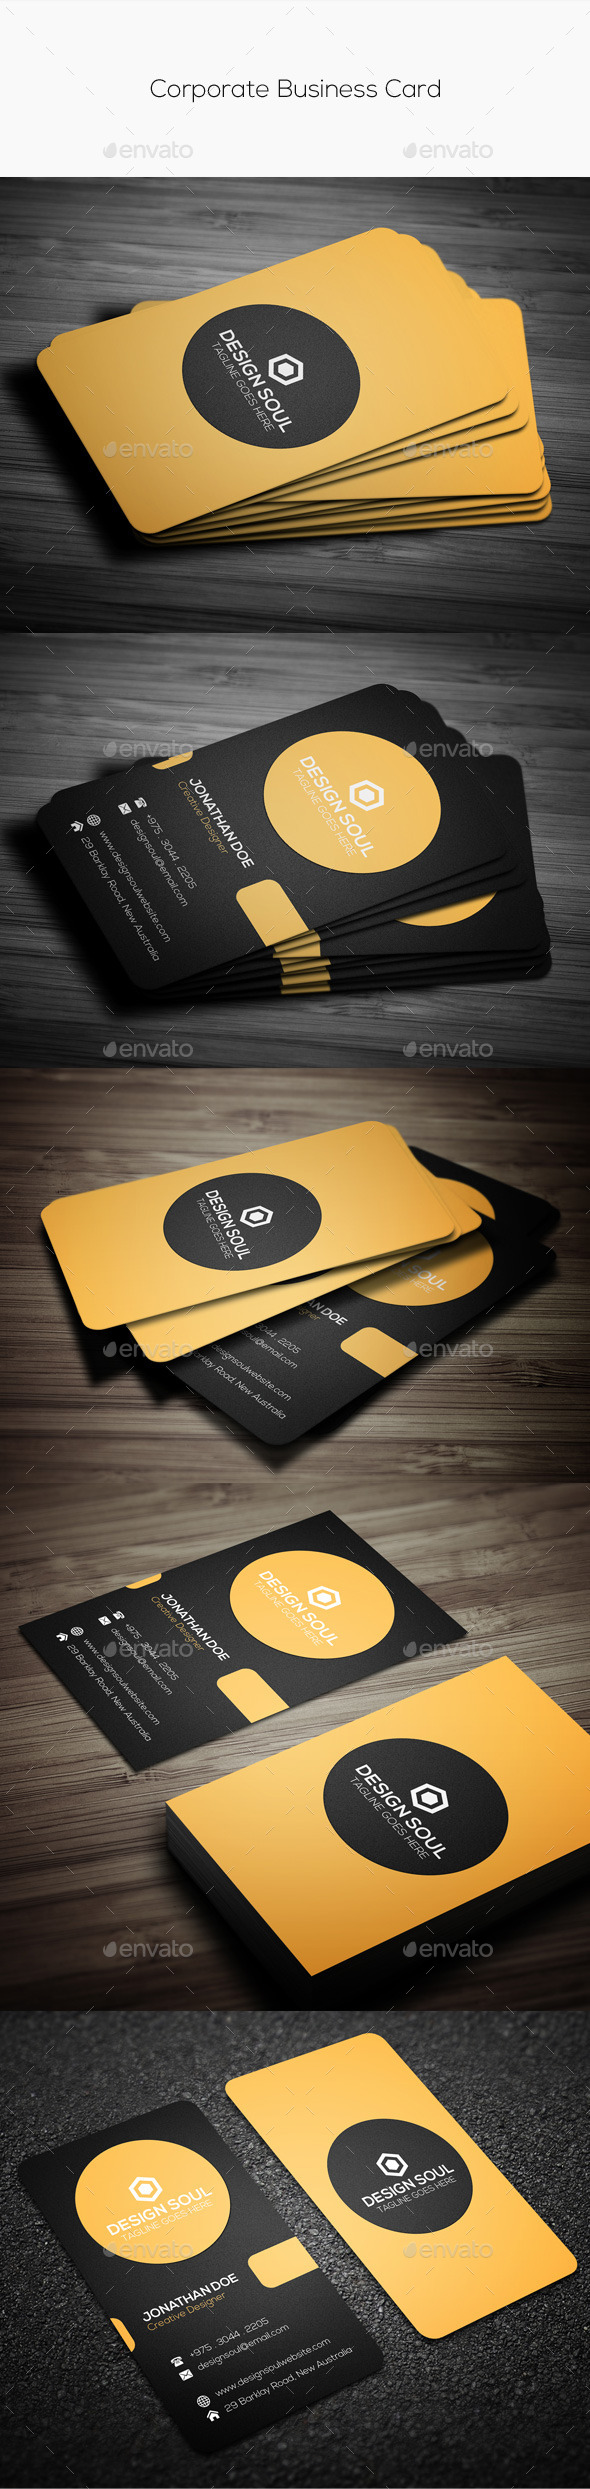 GraphicRiver Corporate Business Card 10582257